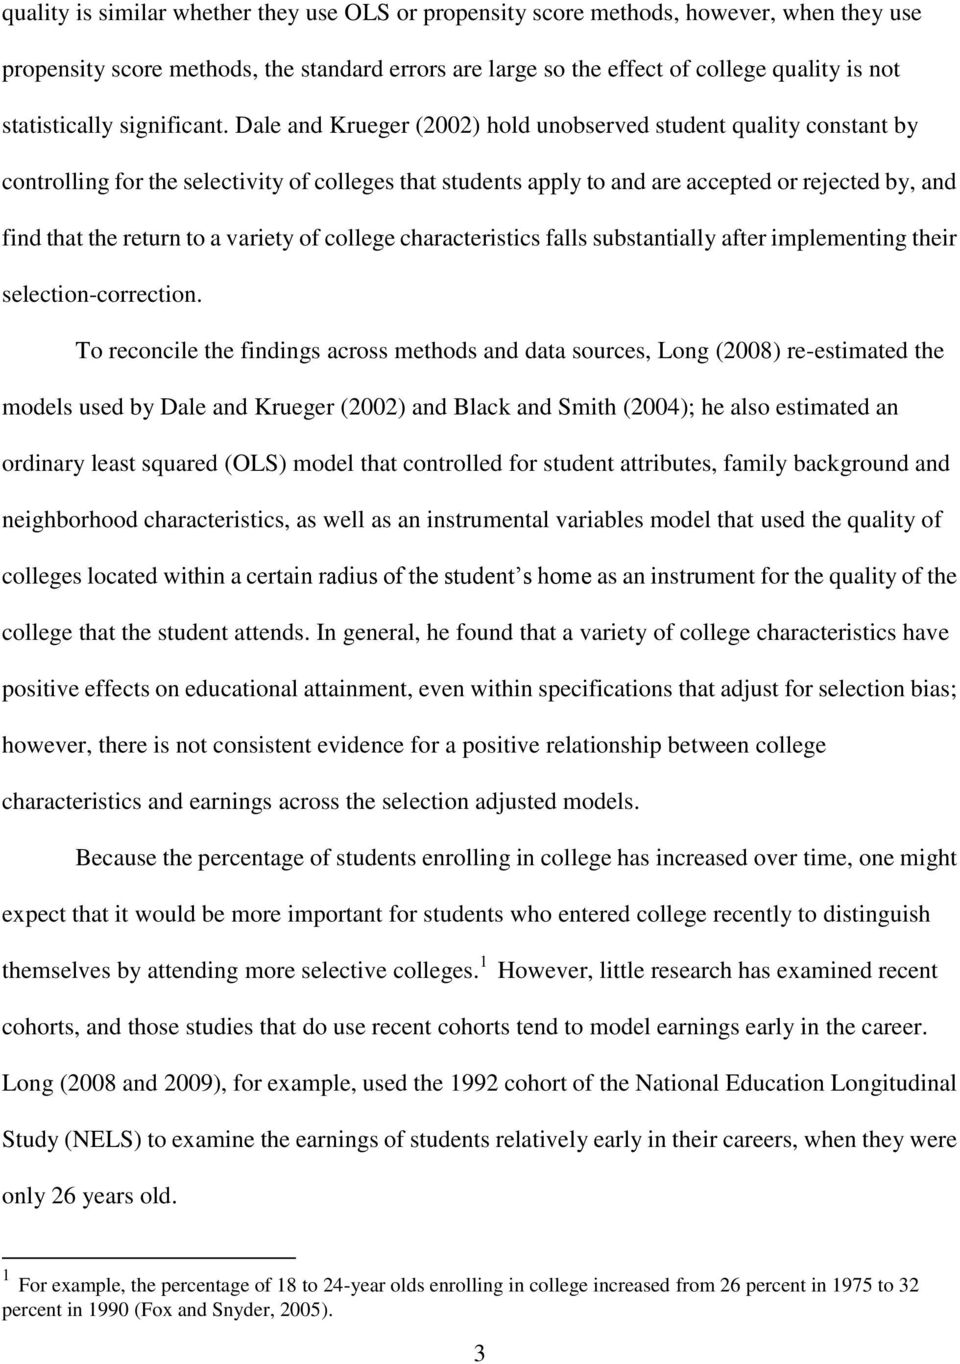 Dale and Krueger (2002) hold unobserved student quality constant by controlling for the selectivity of colleges that students apply to and are accepted or rejected by, and find that the return to a